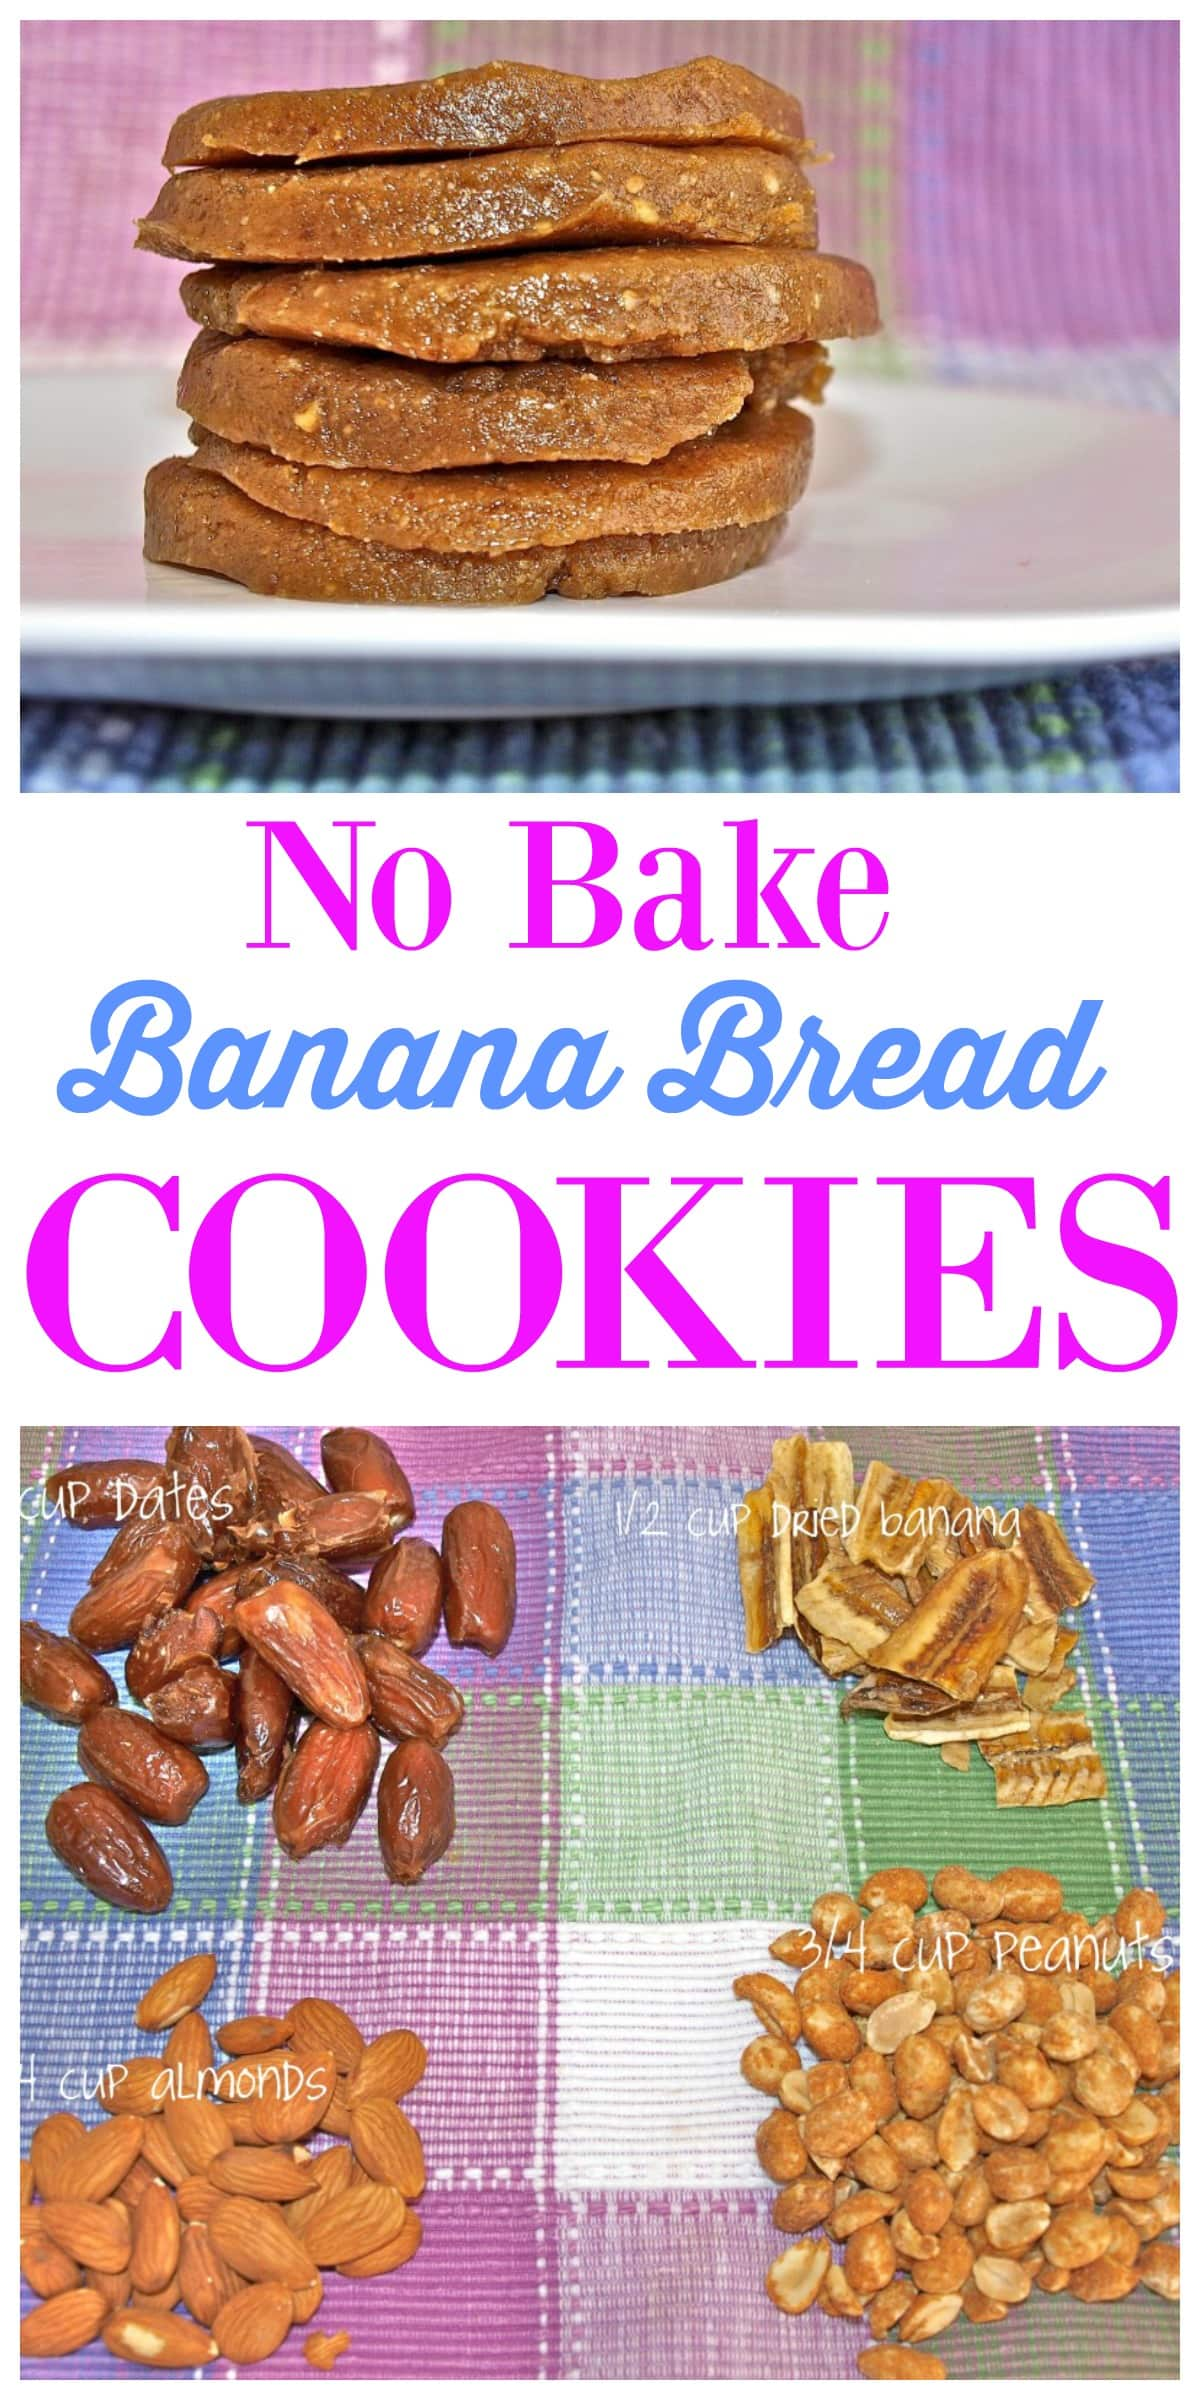 These No Bake Banana Bread Cookies are a snap to make and taste just ...